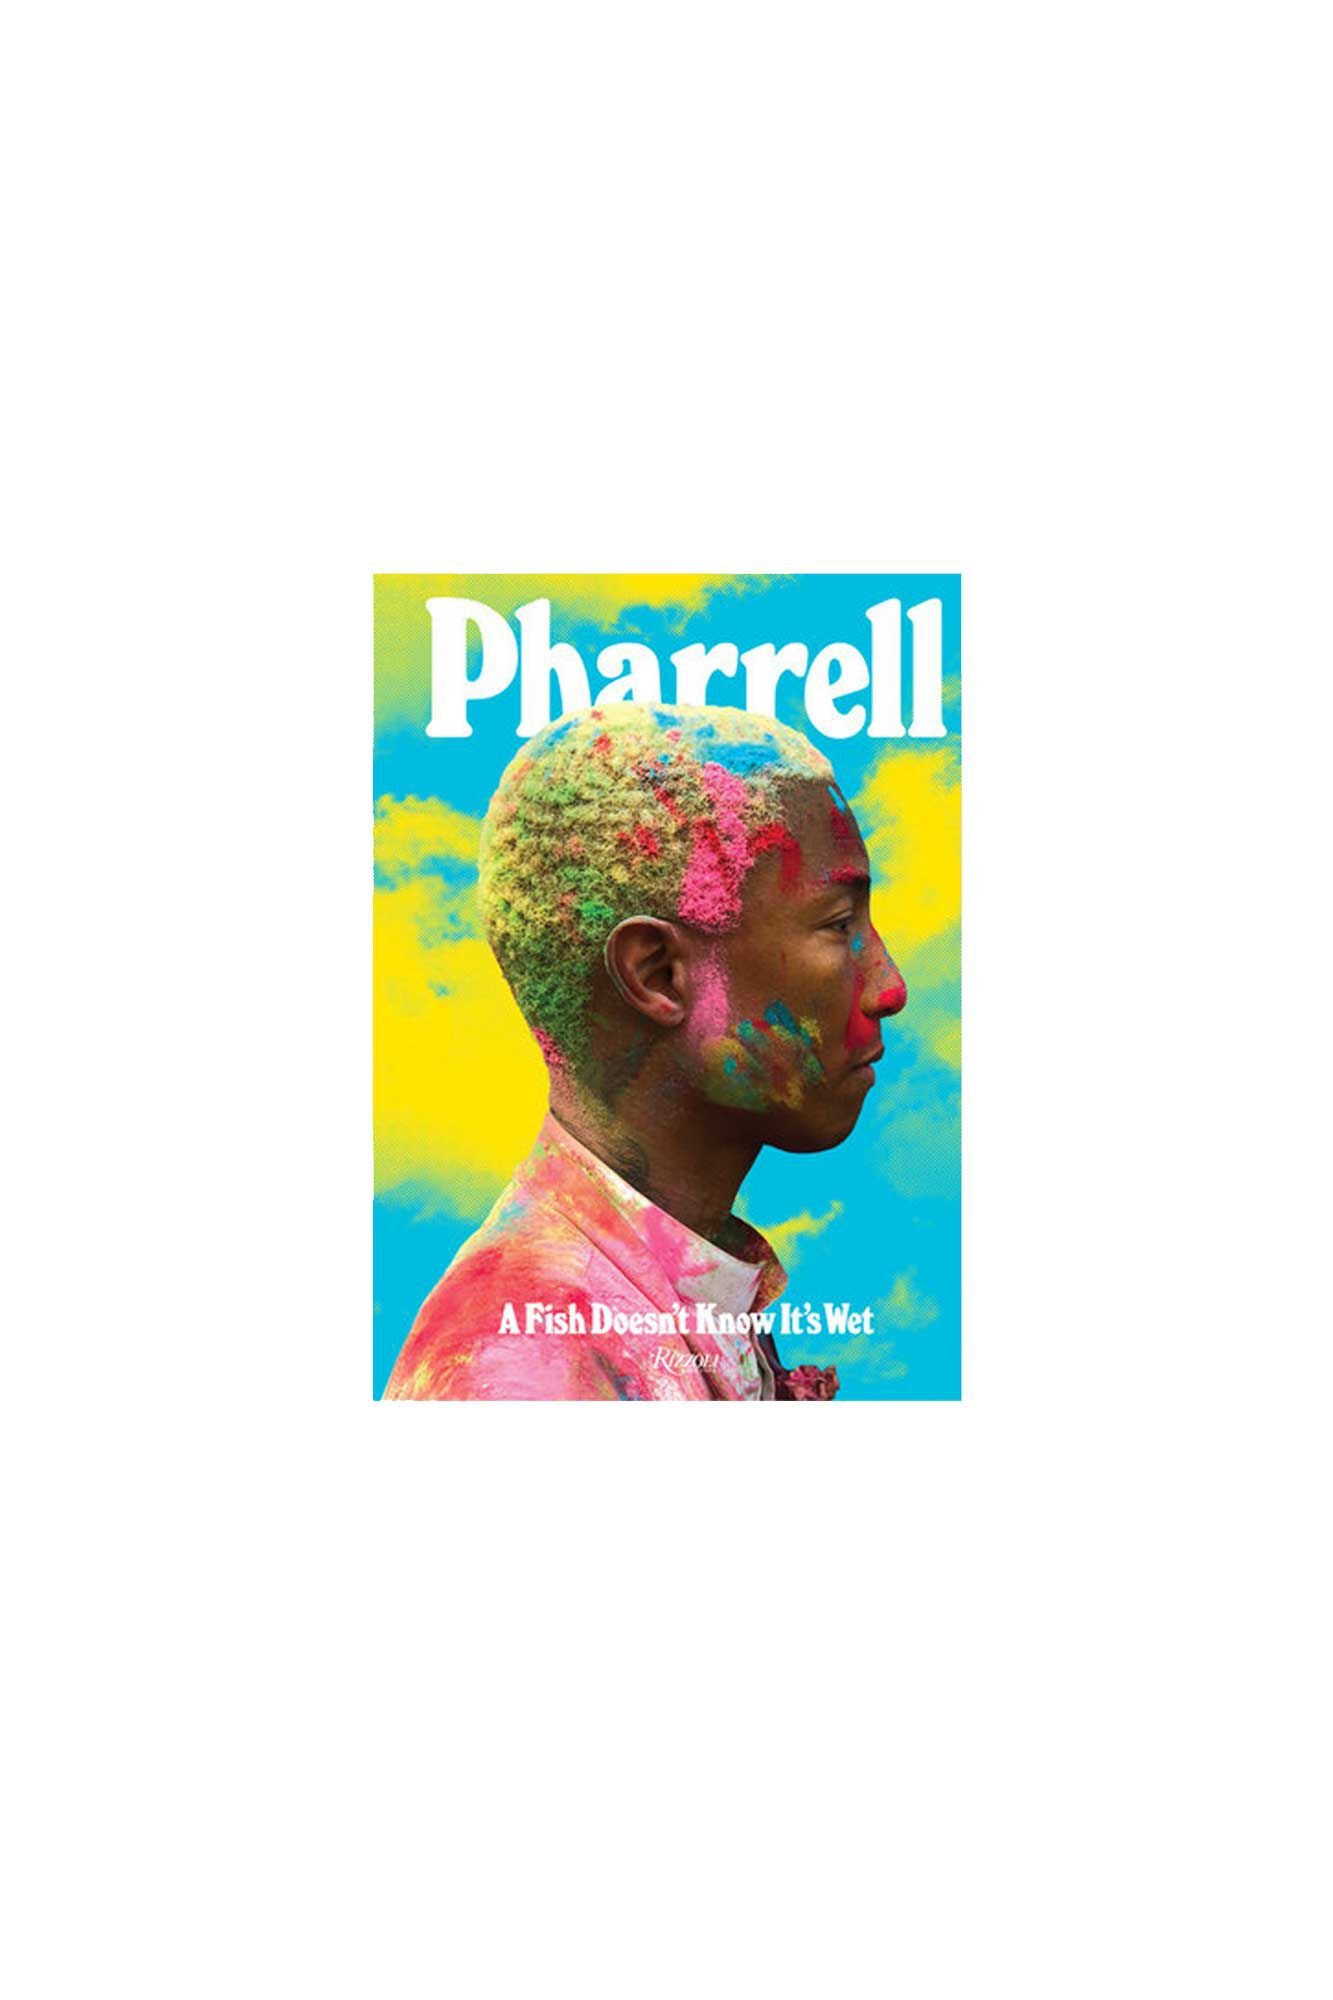 Pharell: a fish doesn't RI1040